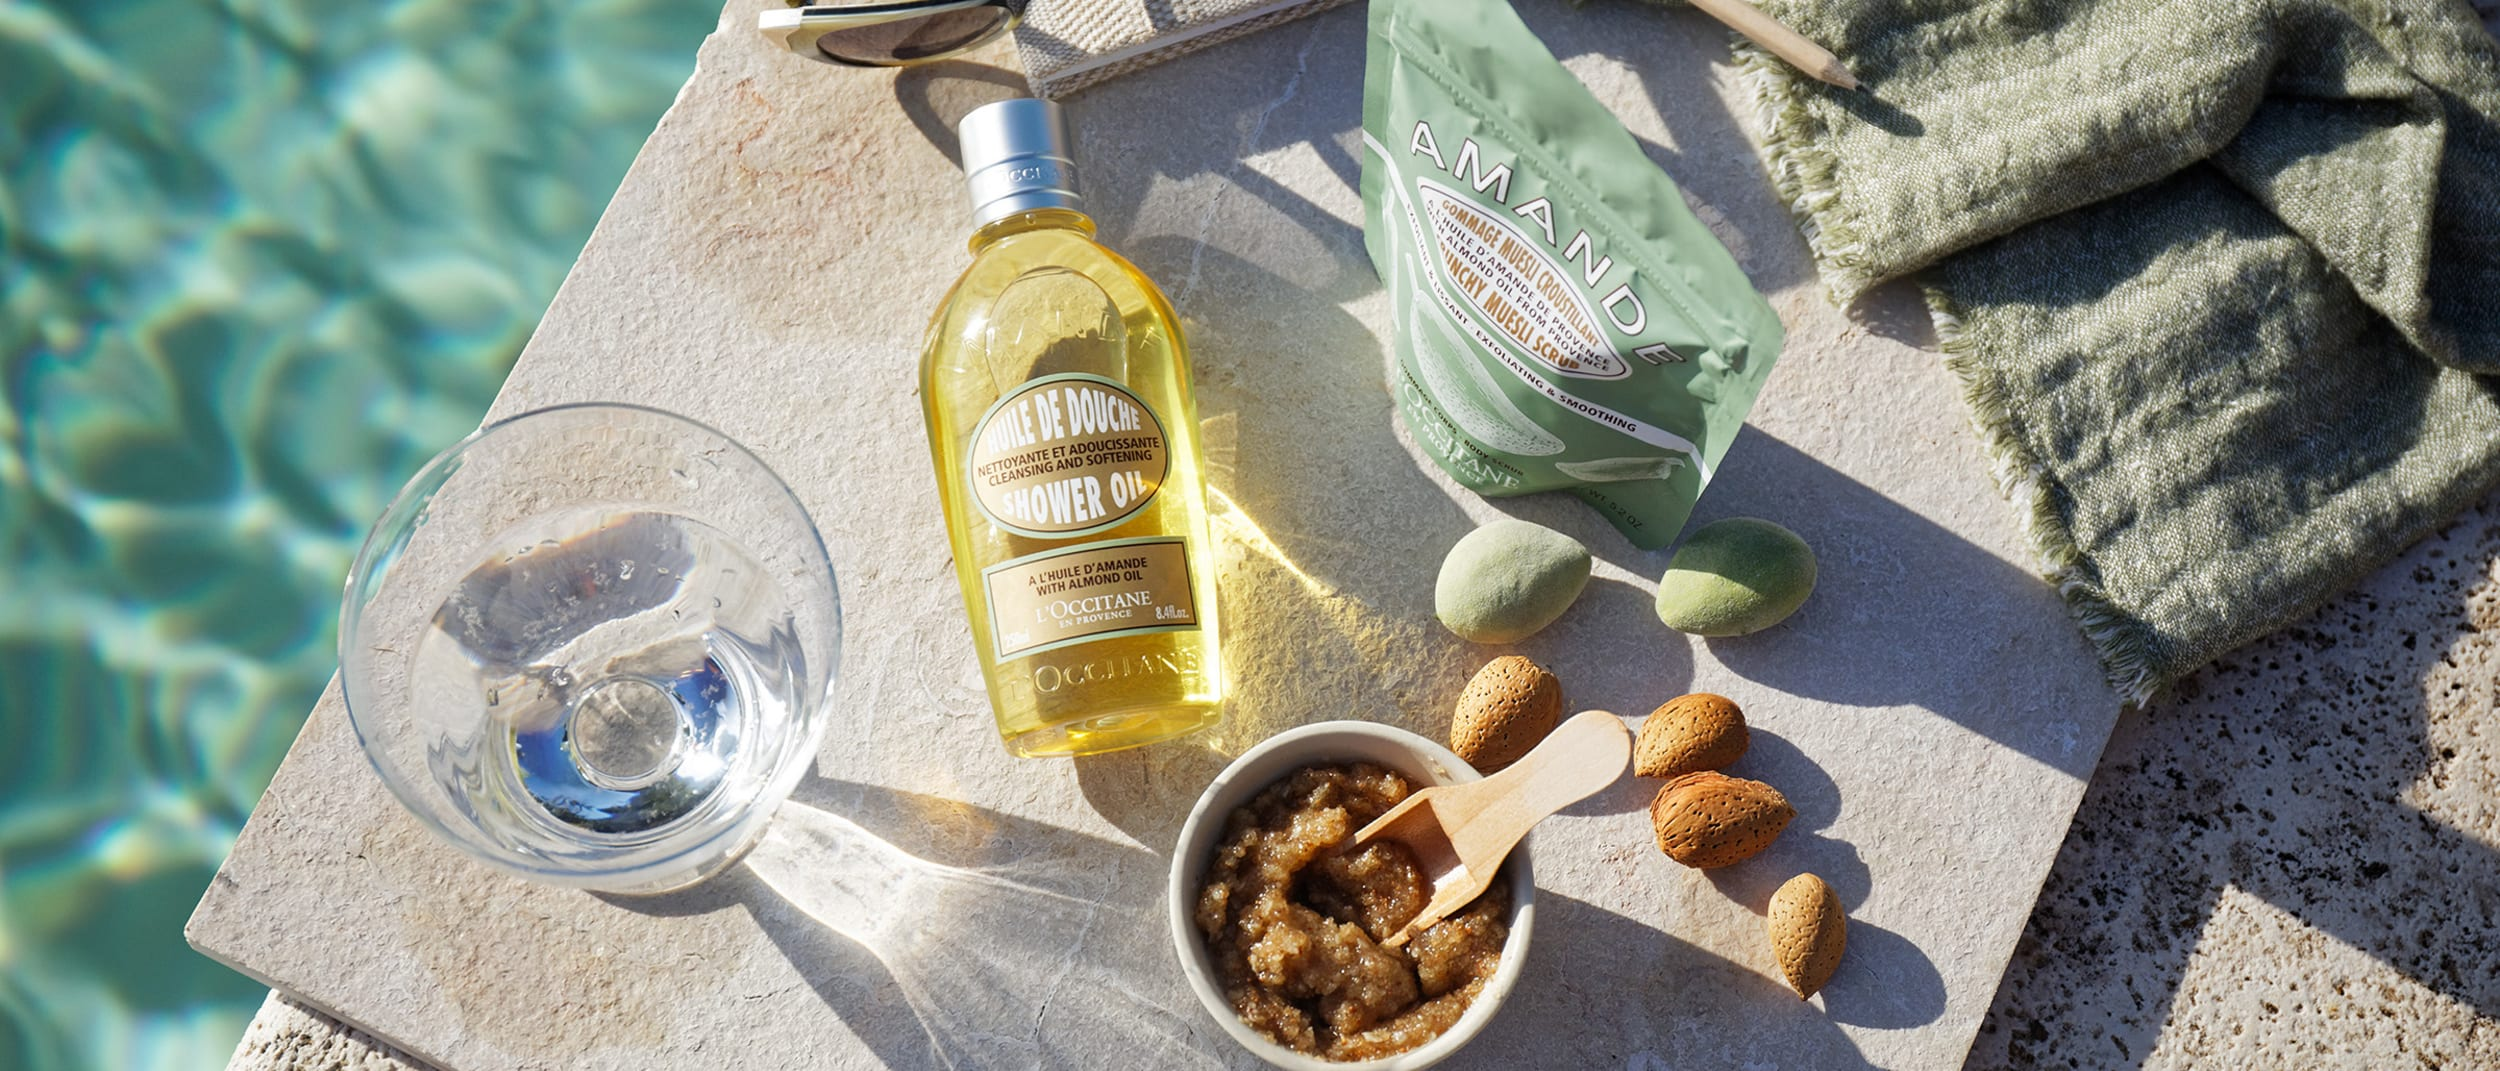 L'OCCITANE: New Almond Muesli Scrub